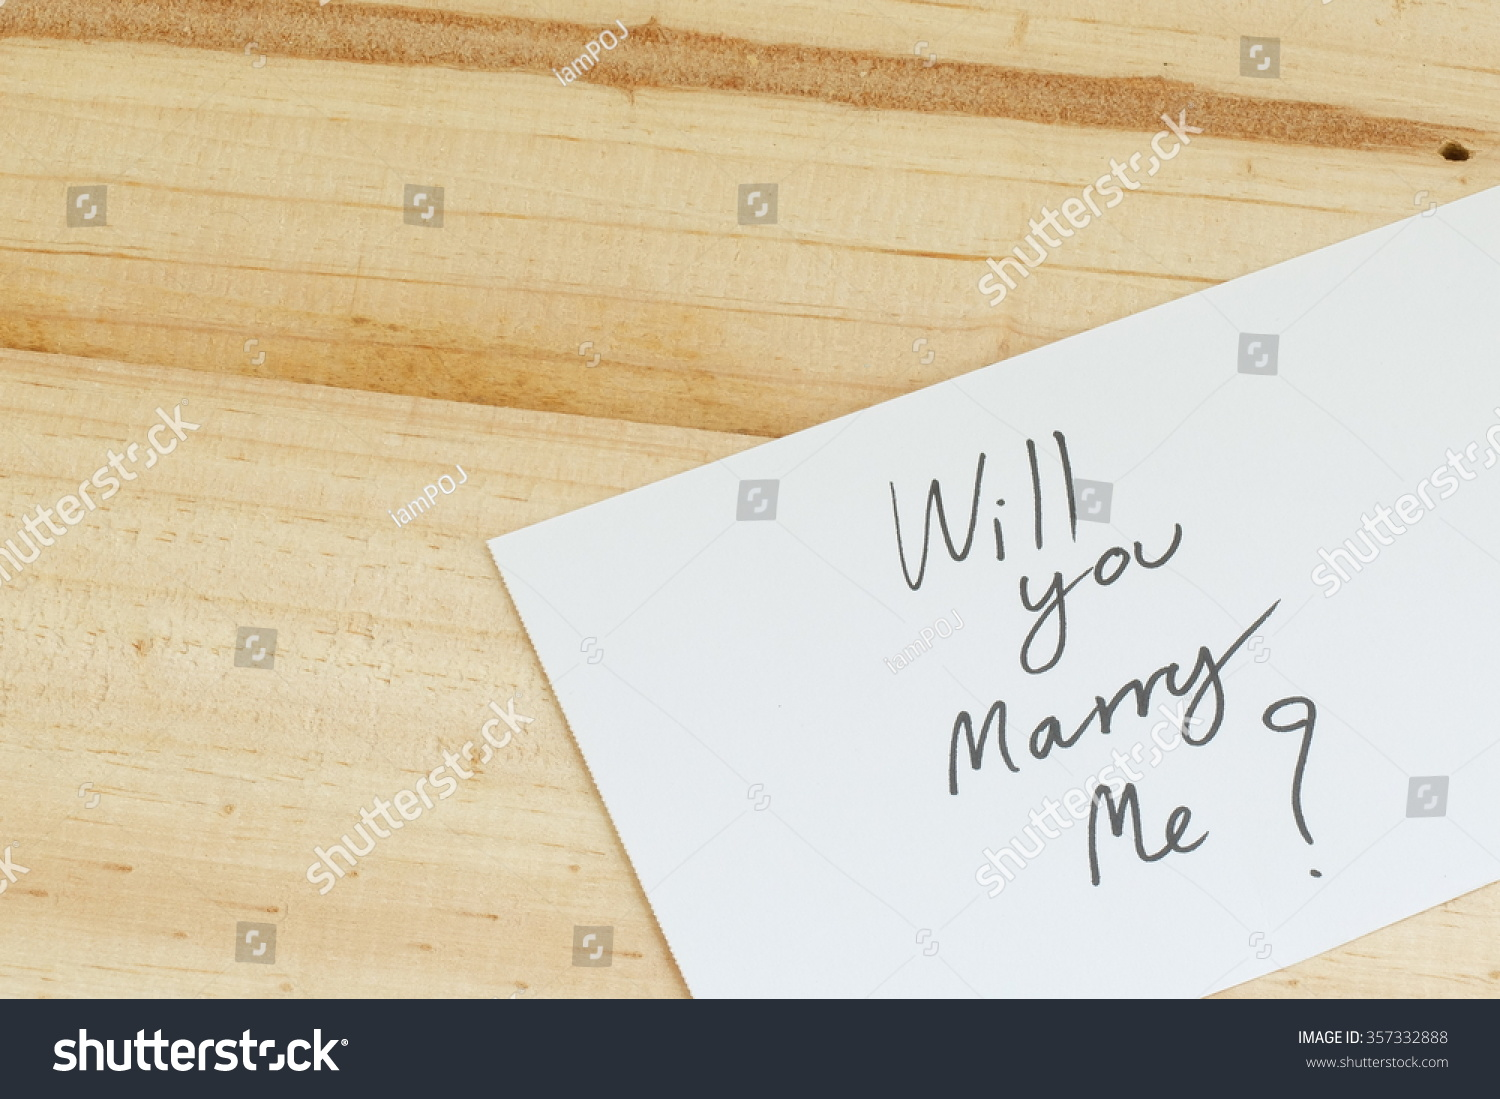 will you marry me words written stock photo shutterstock will you marry me words written on paper